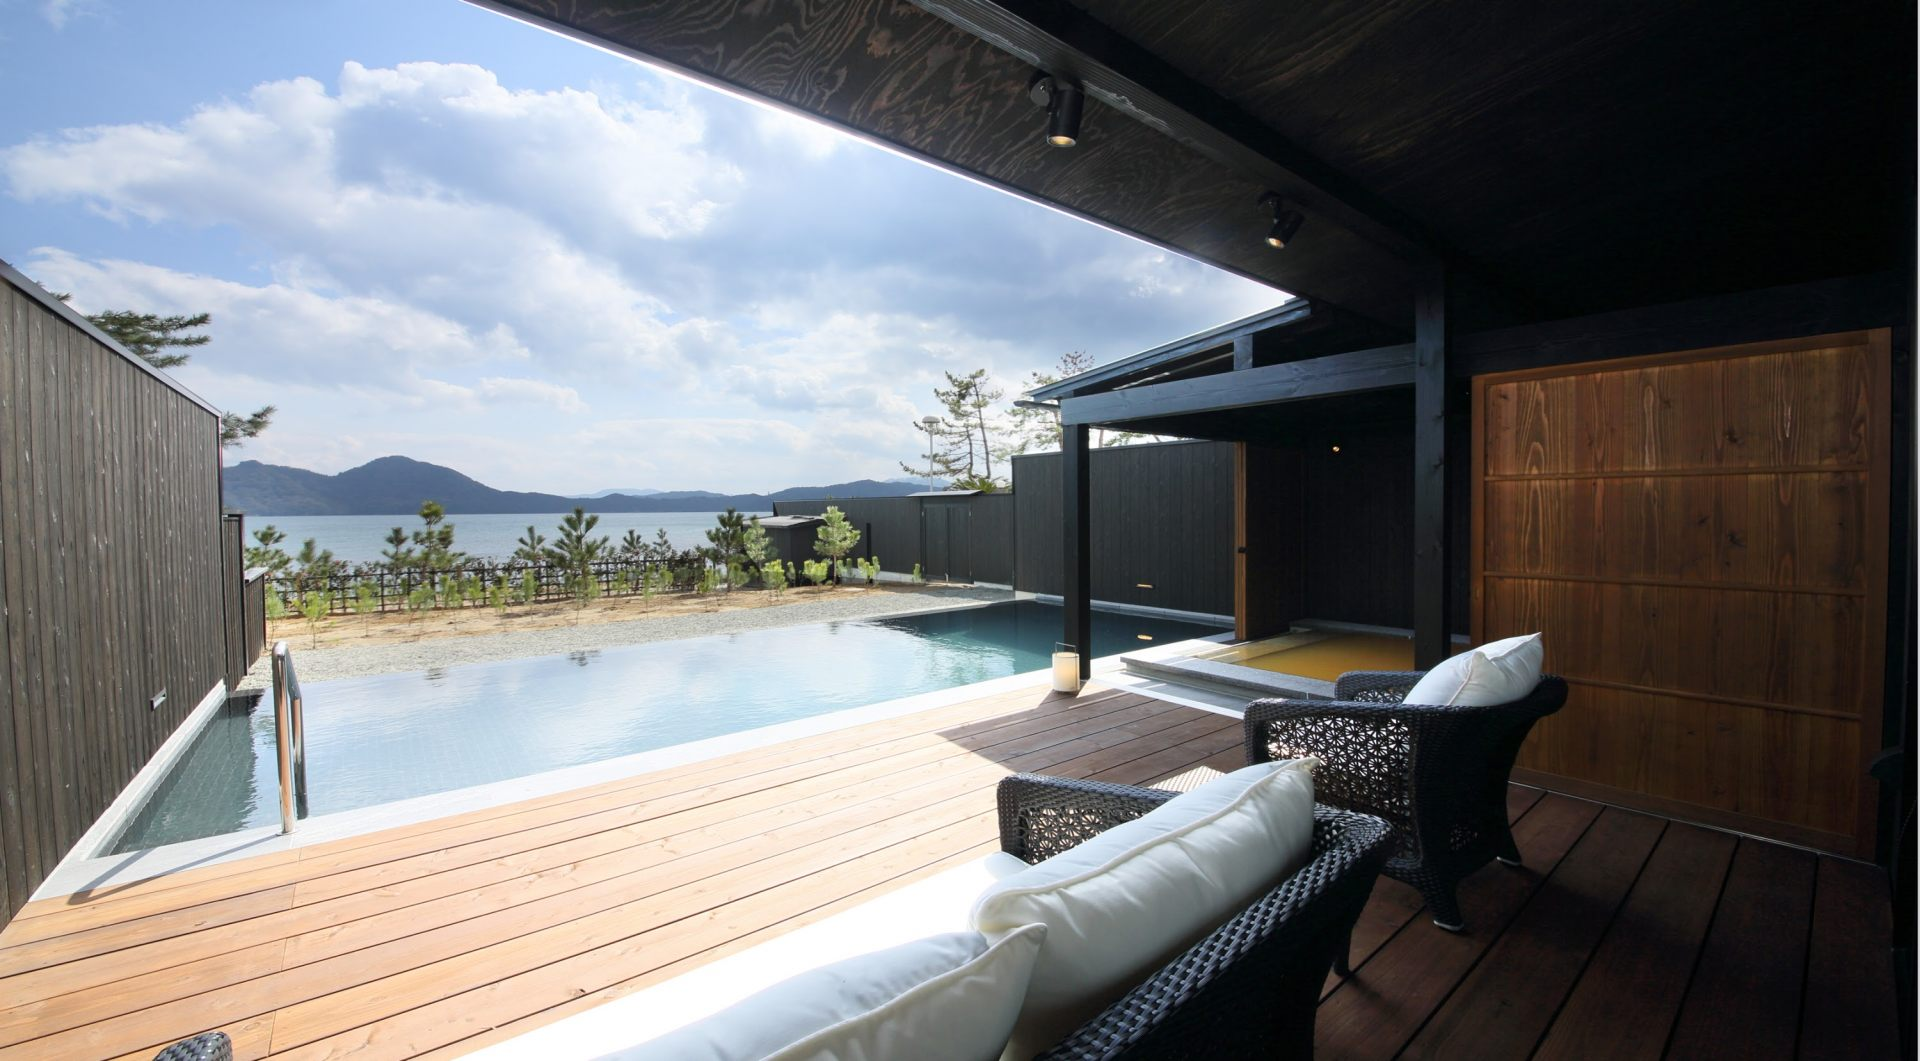 All rooms come equipped with an infinity pool and two types of hot springs.